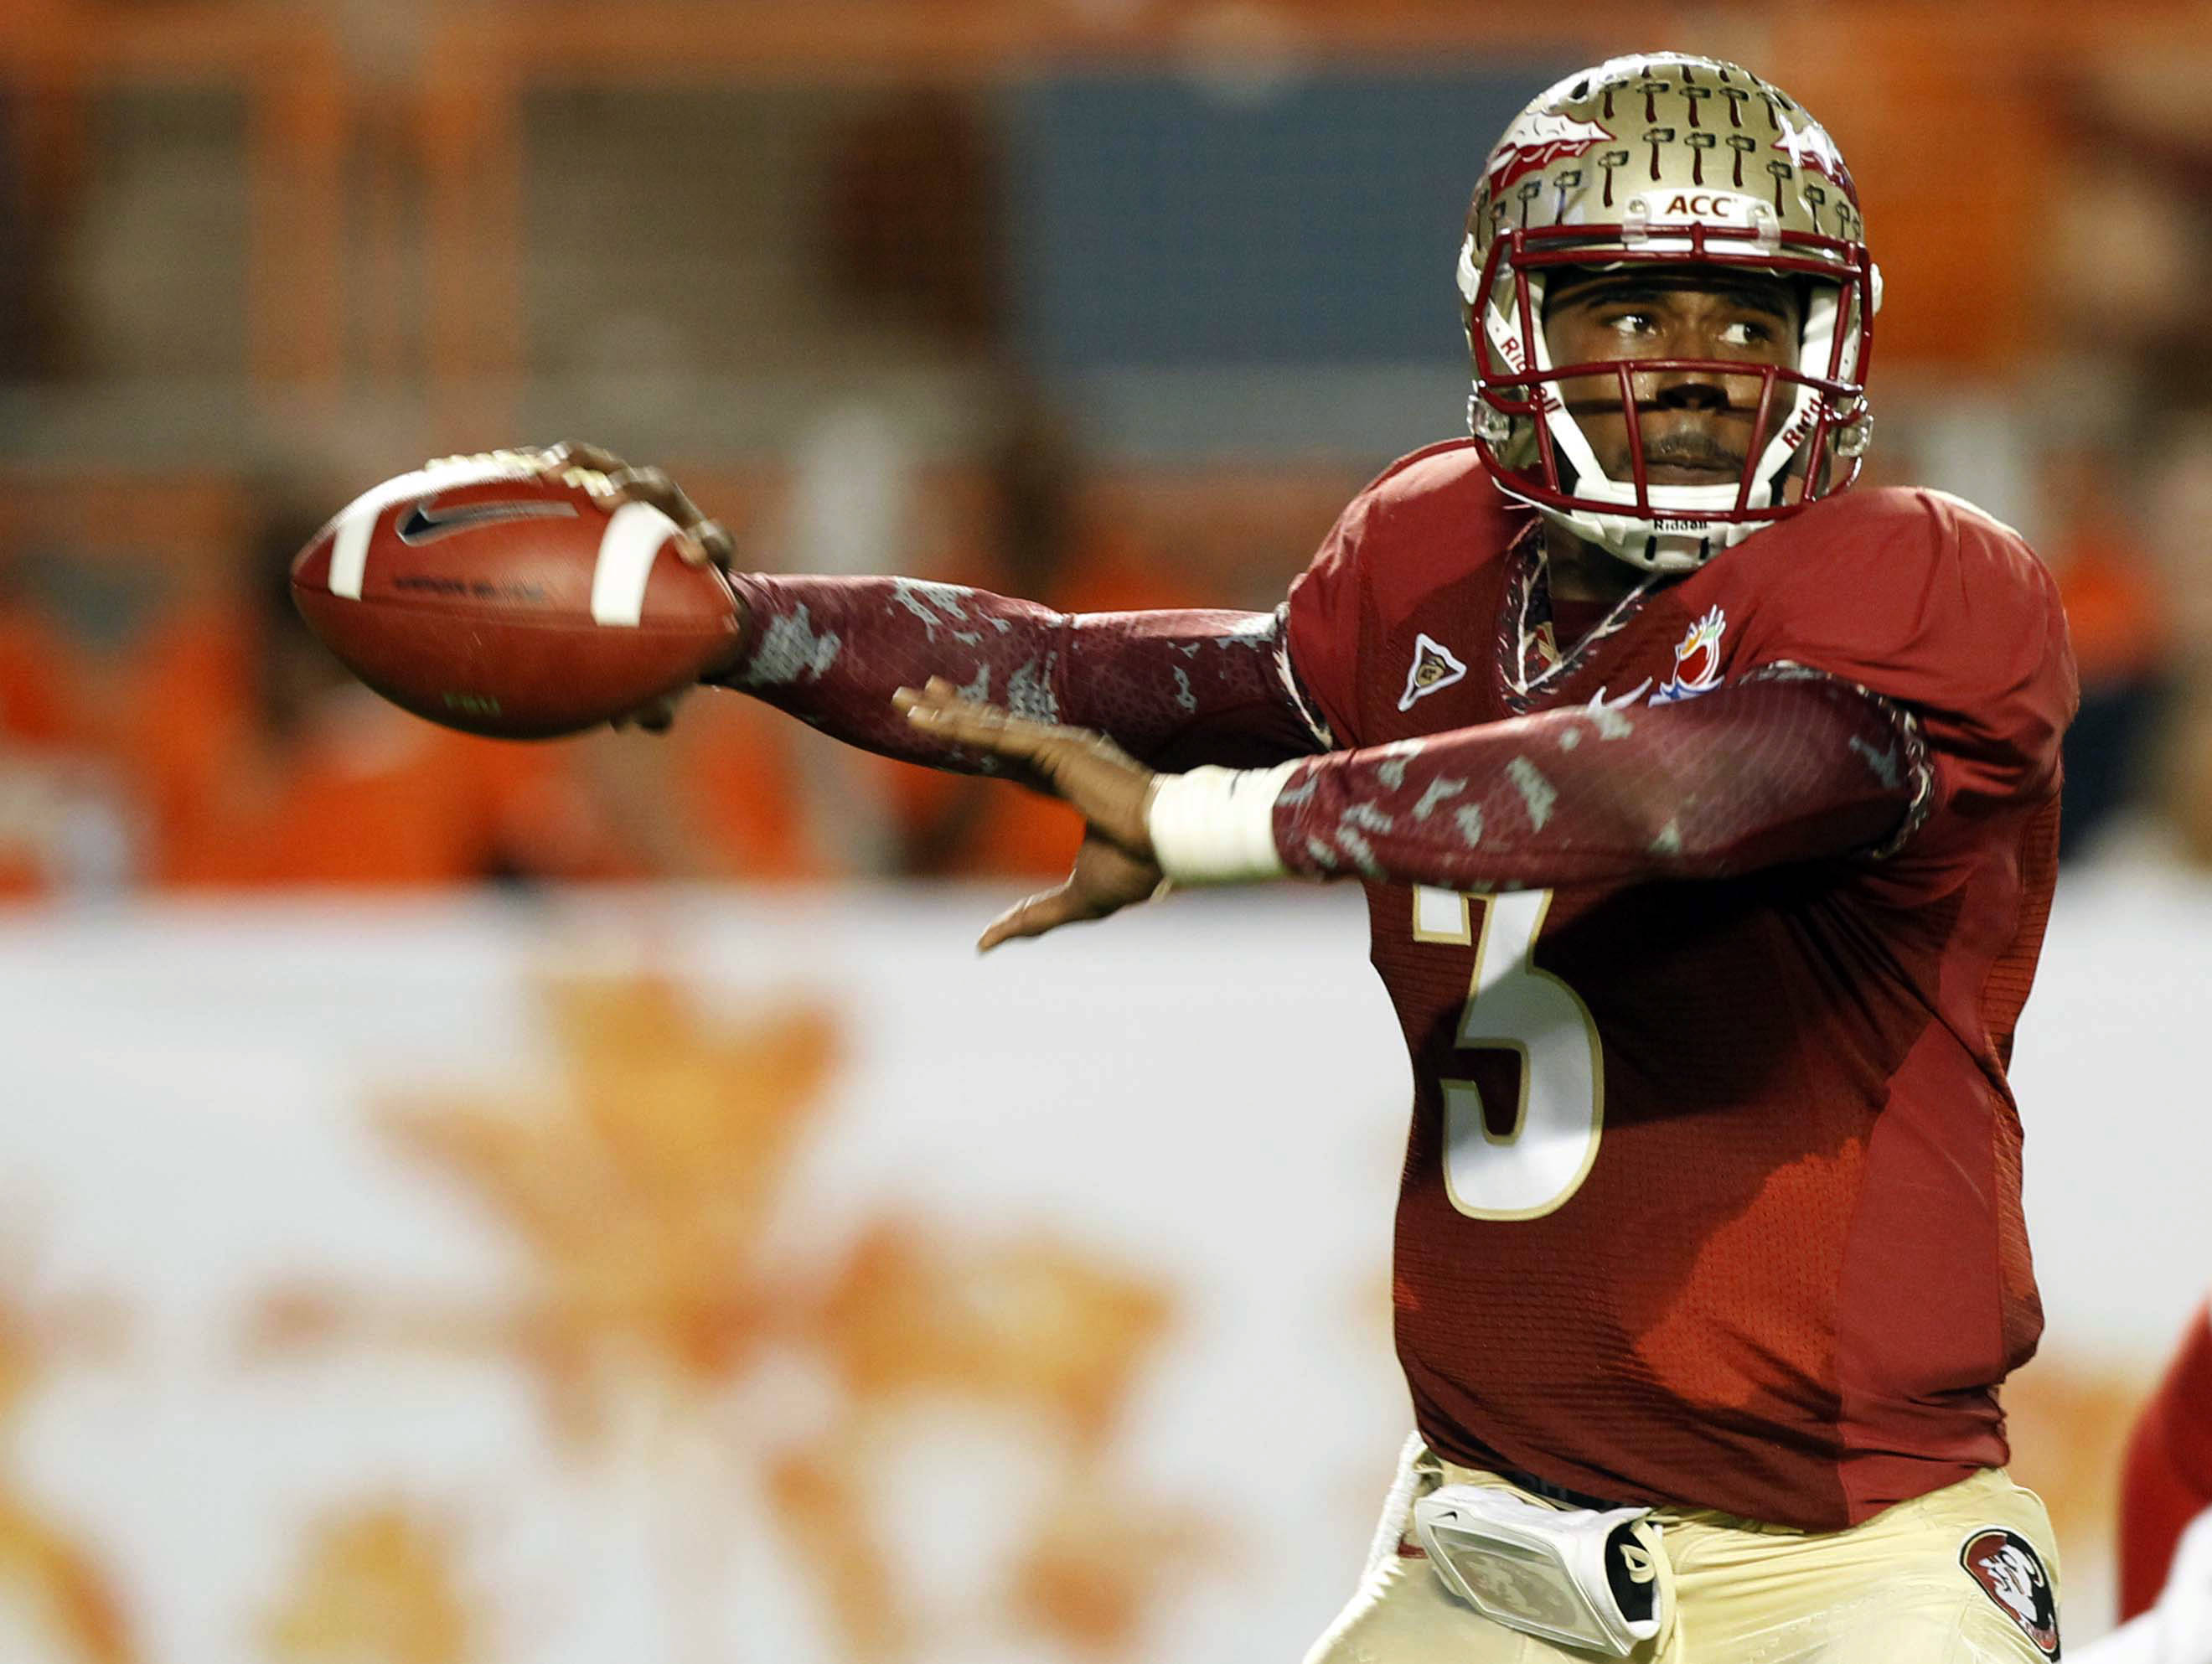 Florida State quarterback EJ Manuel (3) looks to pass during the first half of the Orange Bowl NCAA college football game against Northern Illinois, Tuesday, Jan. 1, 2013, in Miami. (AP Photo/Alan Diaz)